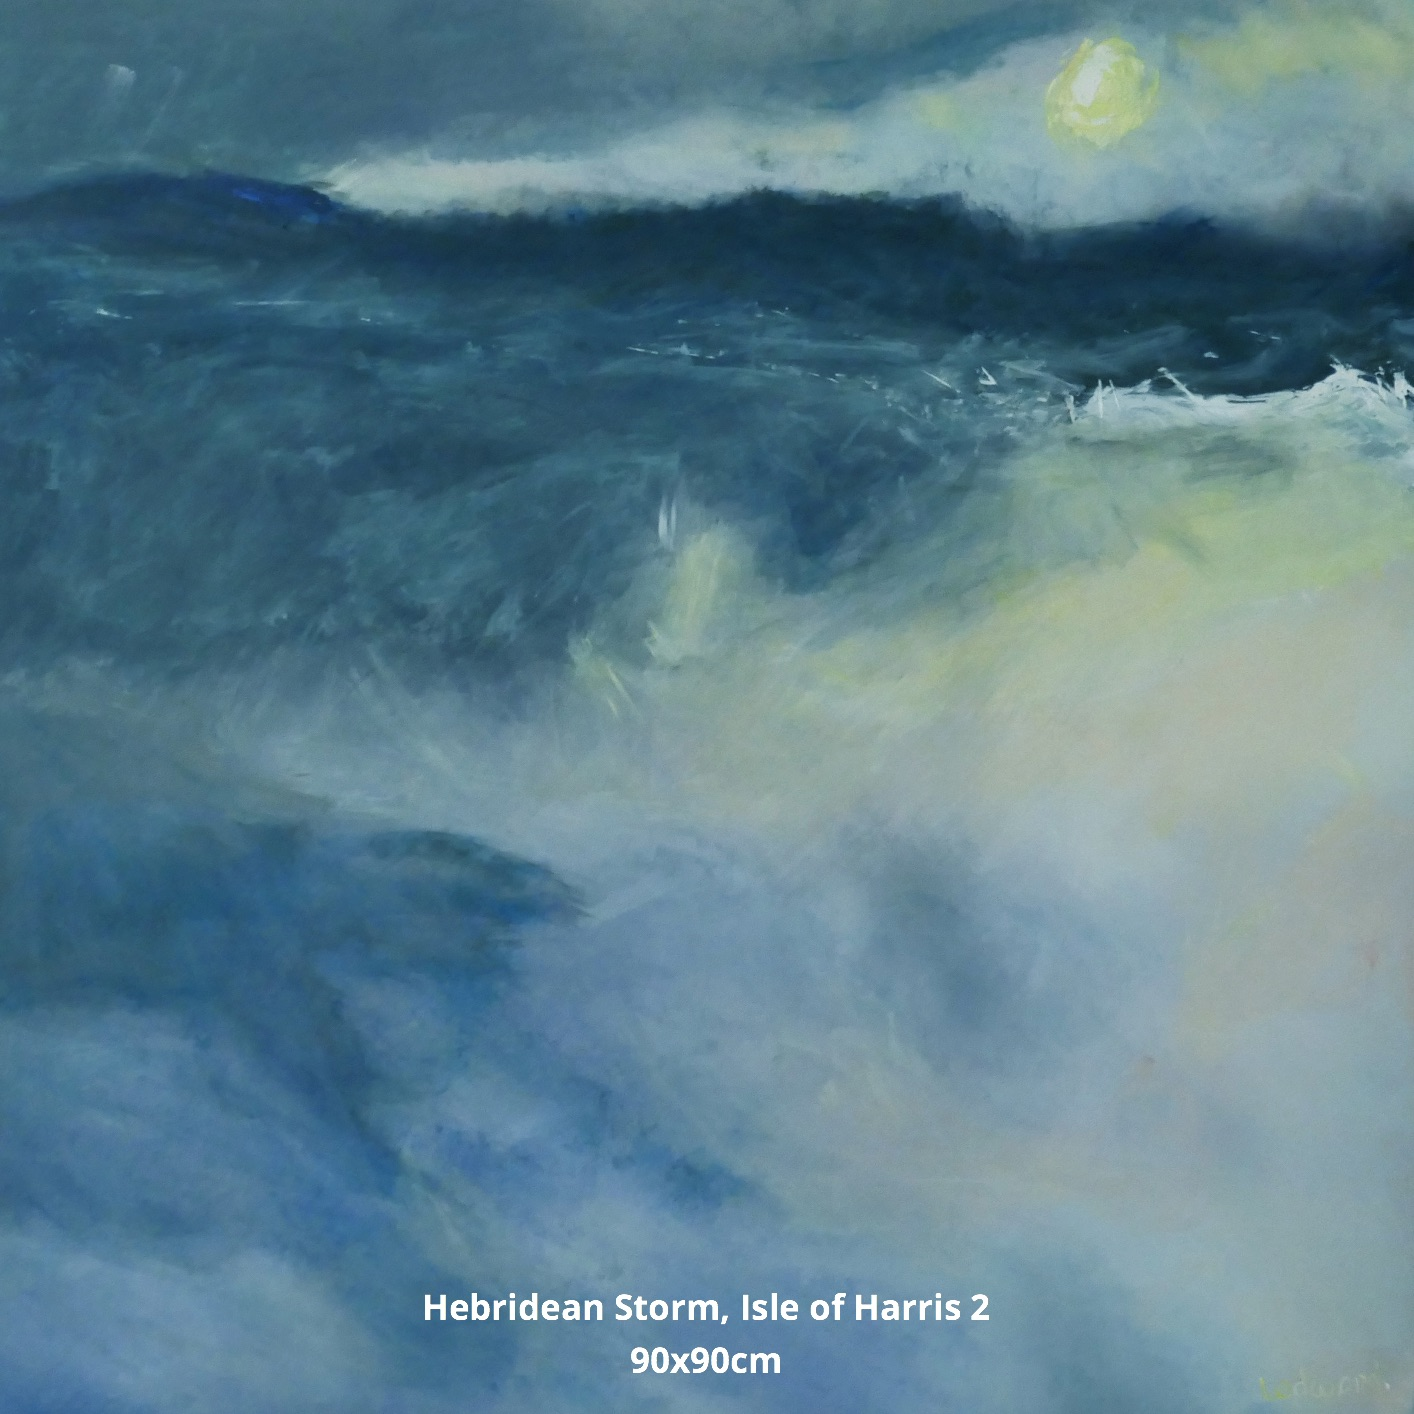 Hebridean Storm, Isle of Harris  2